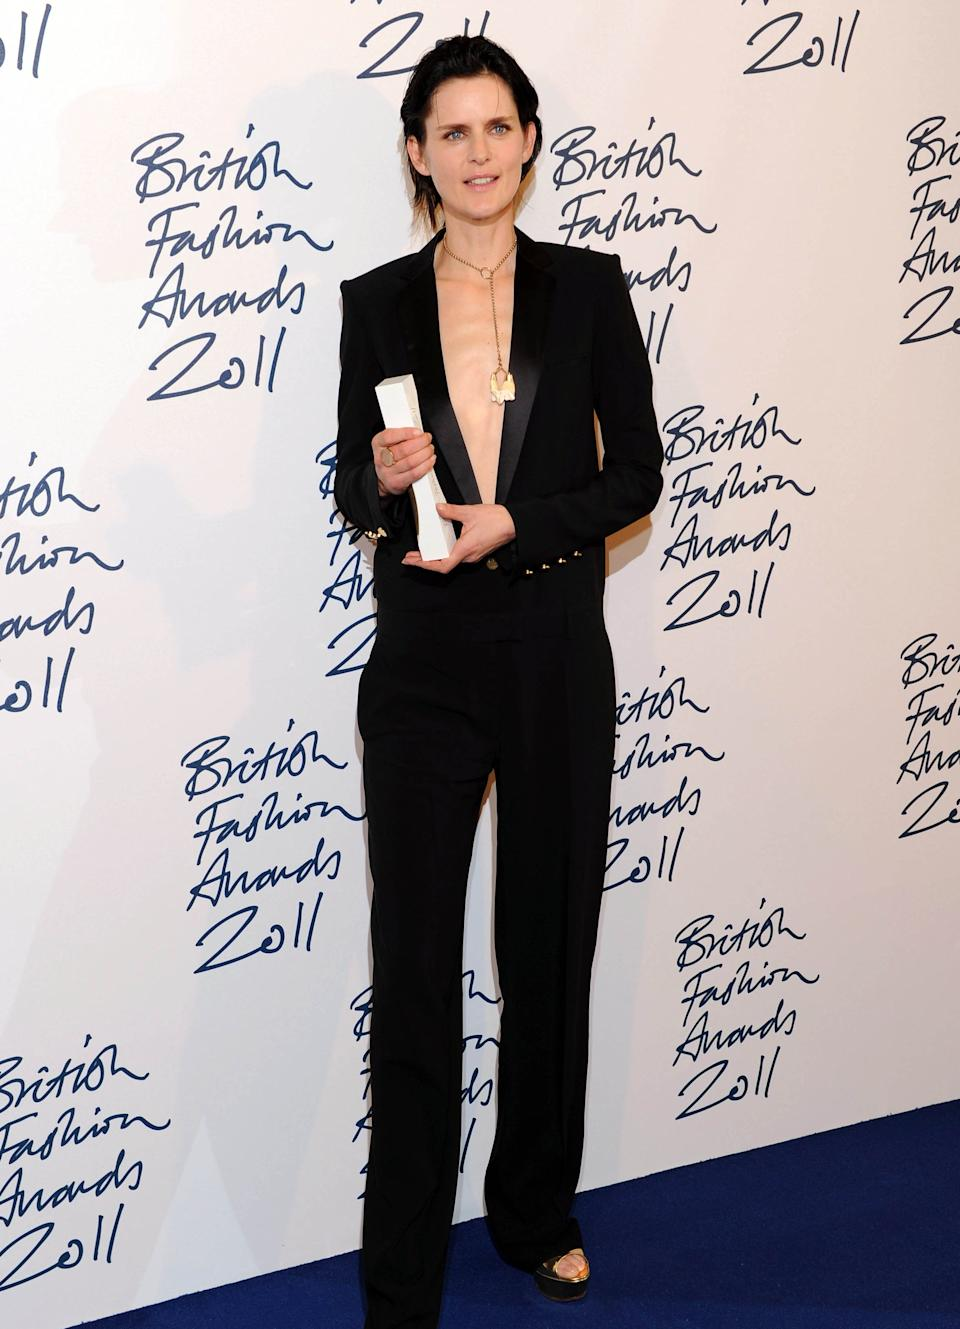 Stella Tennant favoured revealing tailoring for her win at the 2011 British Fashion AwardsRex Features